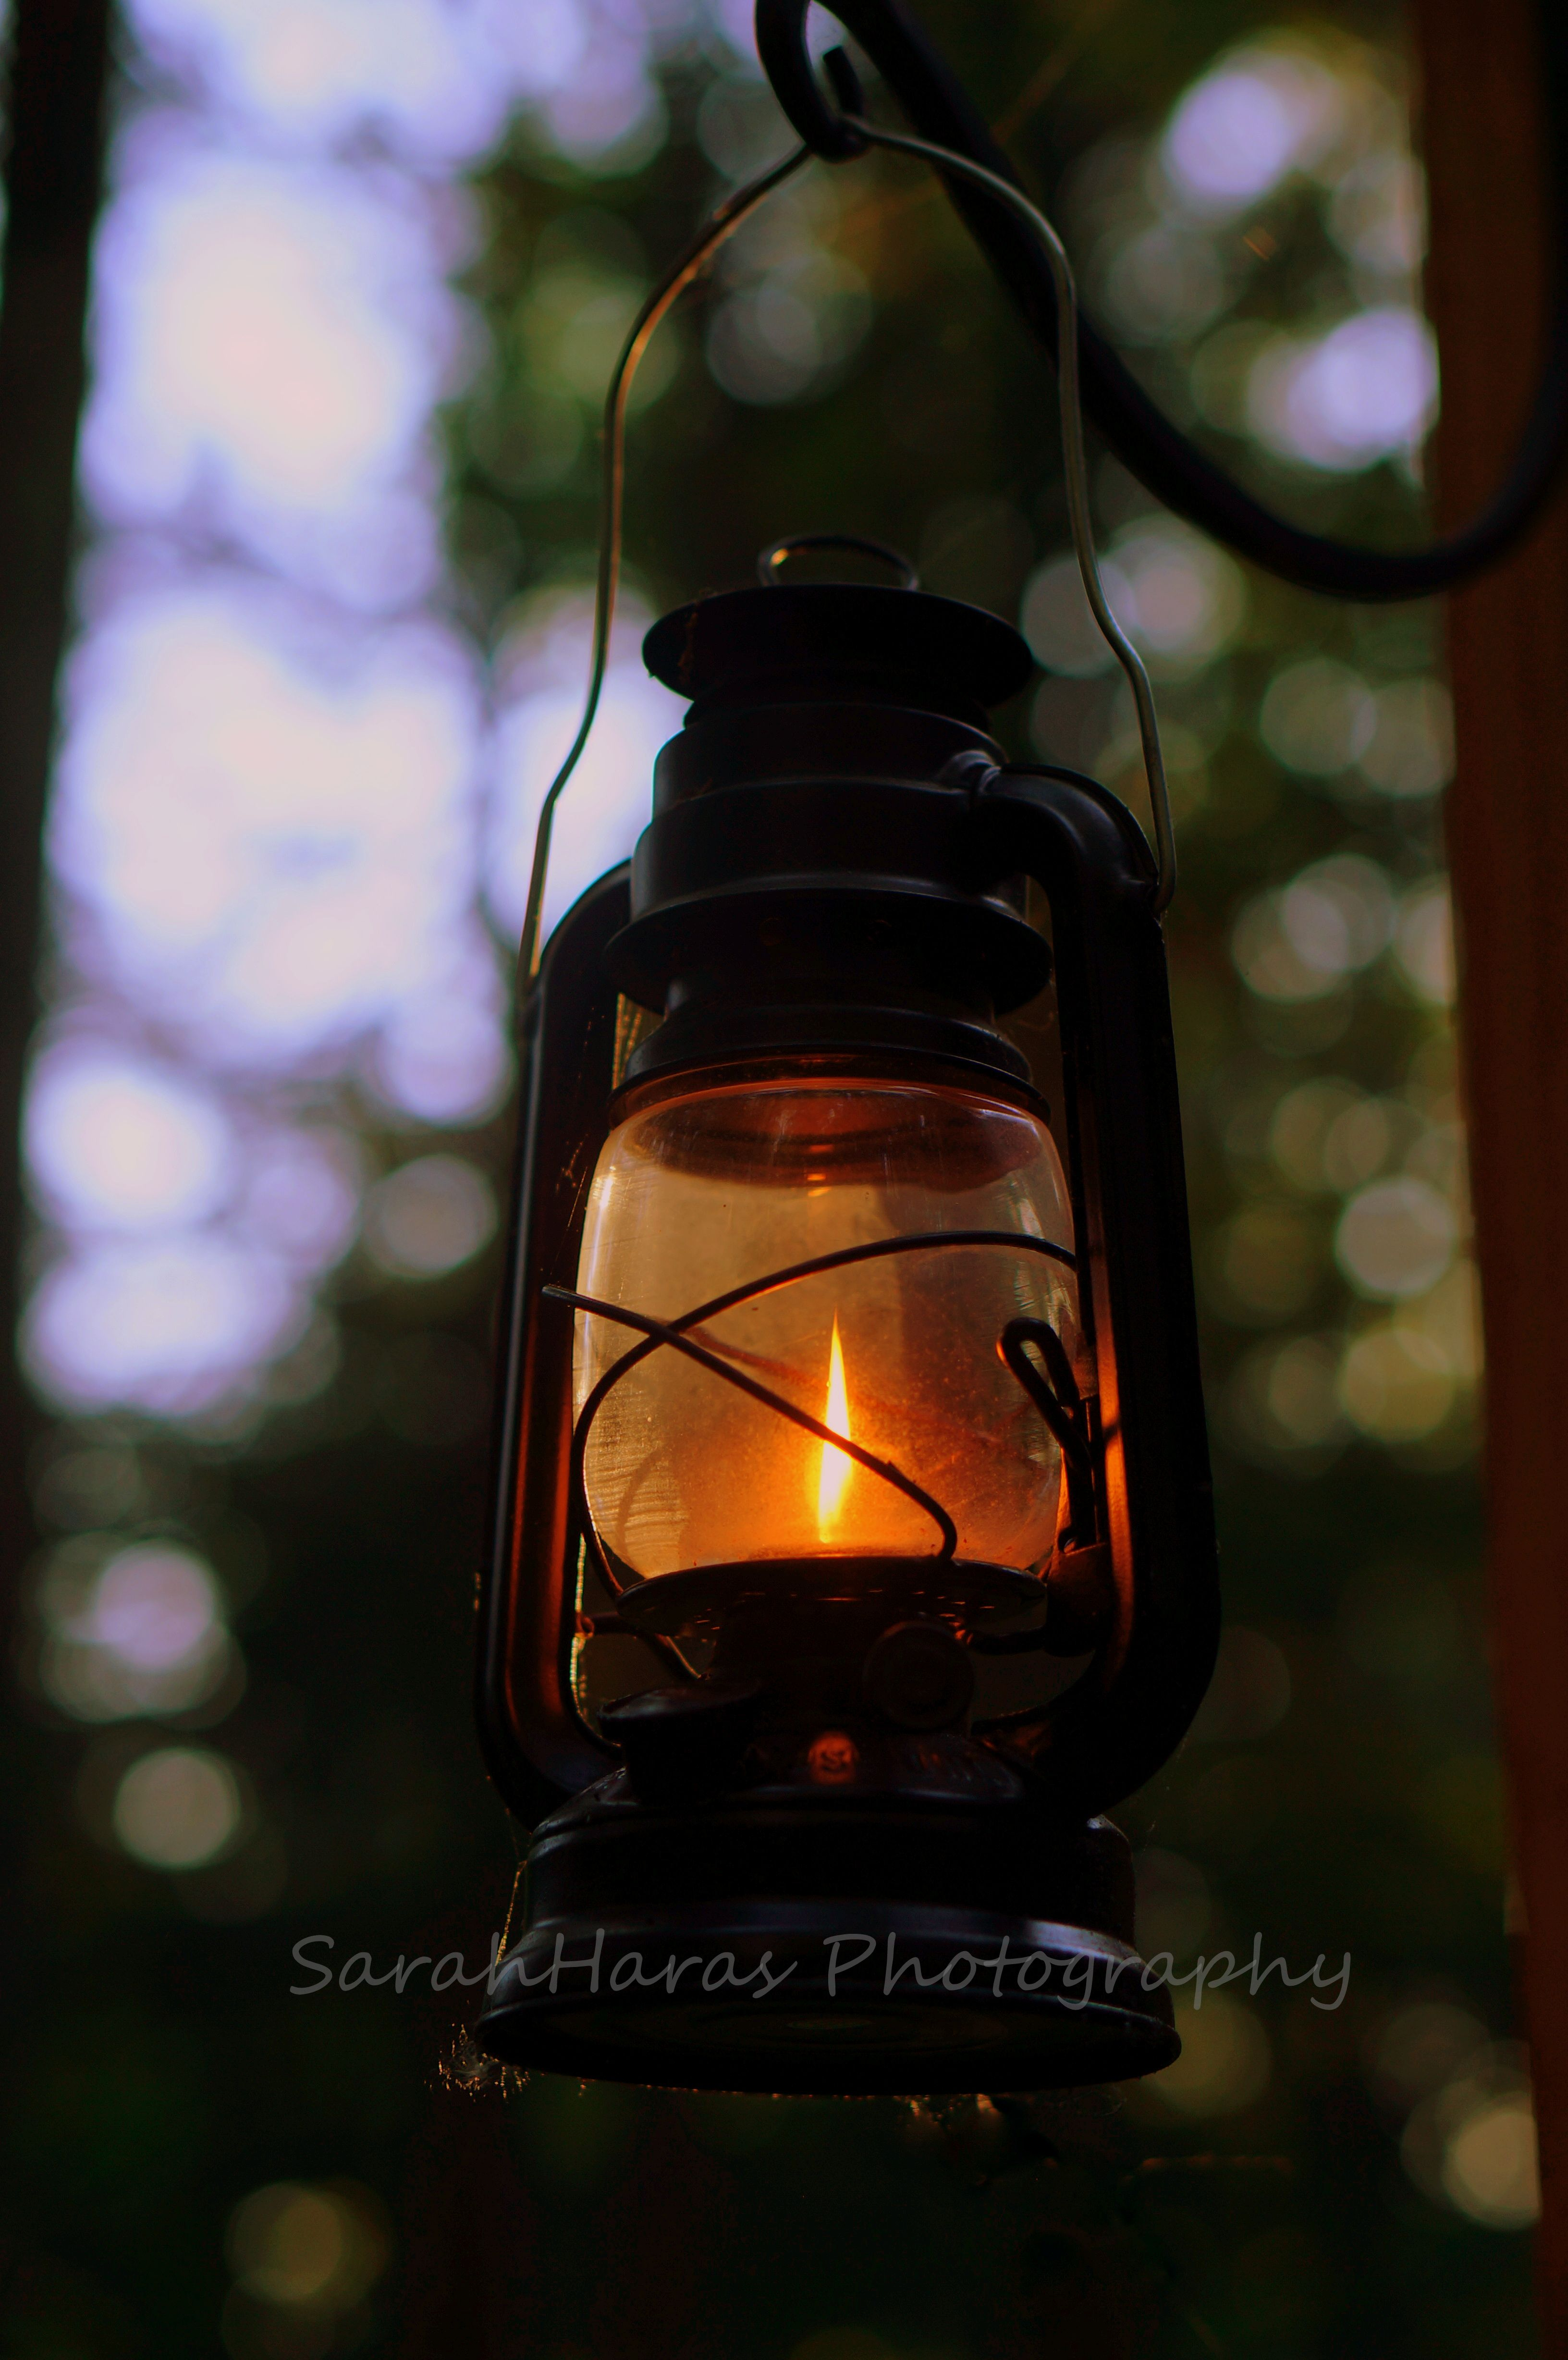 Candle light for summer nights. SarahHaras Photography